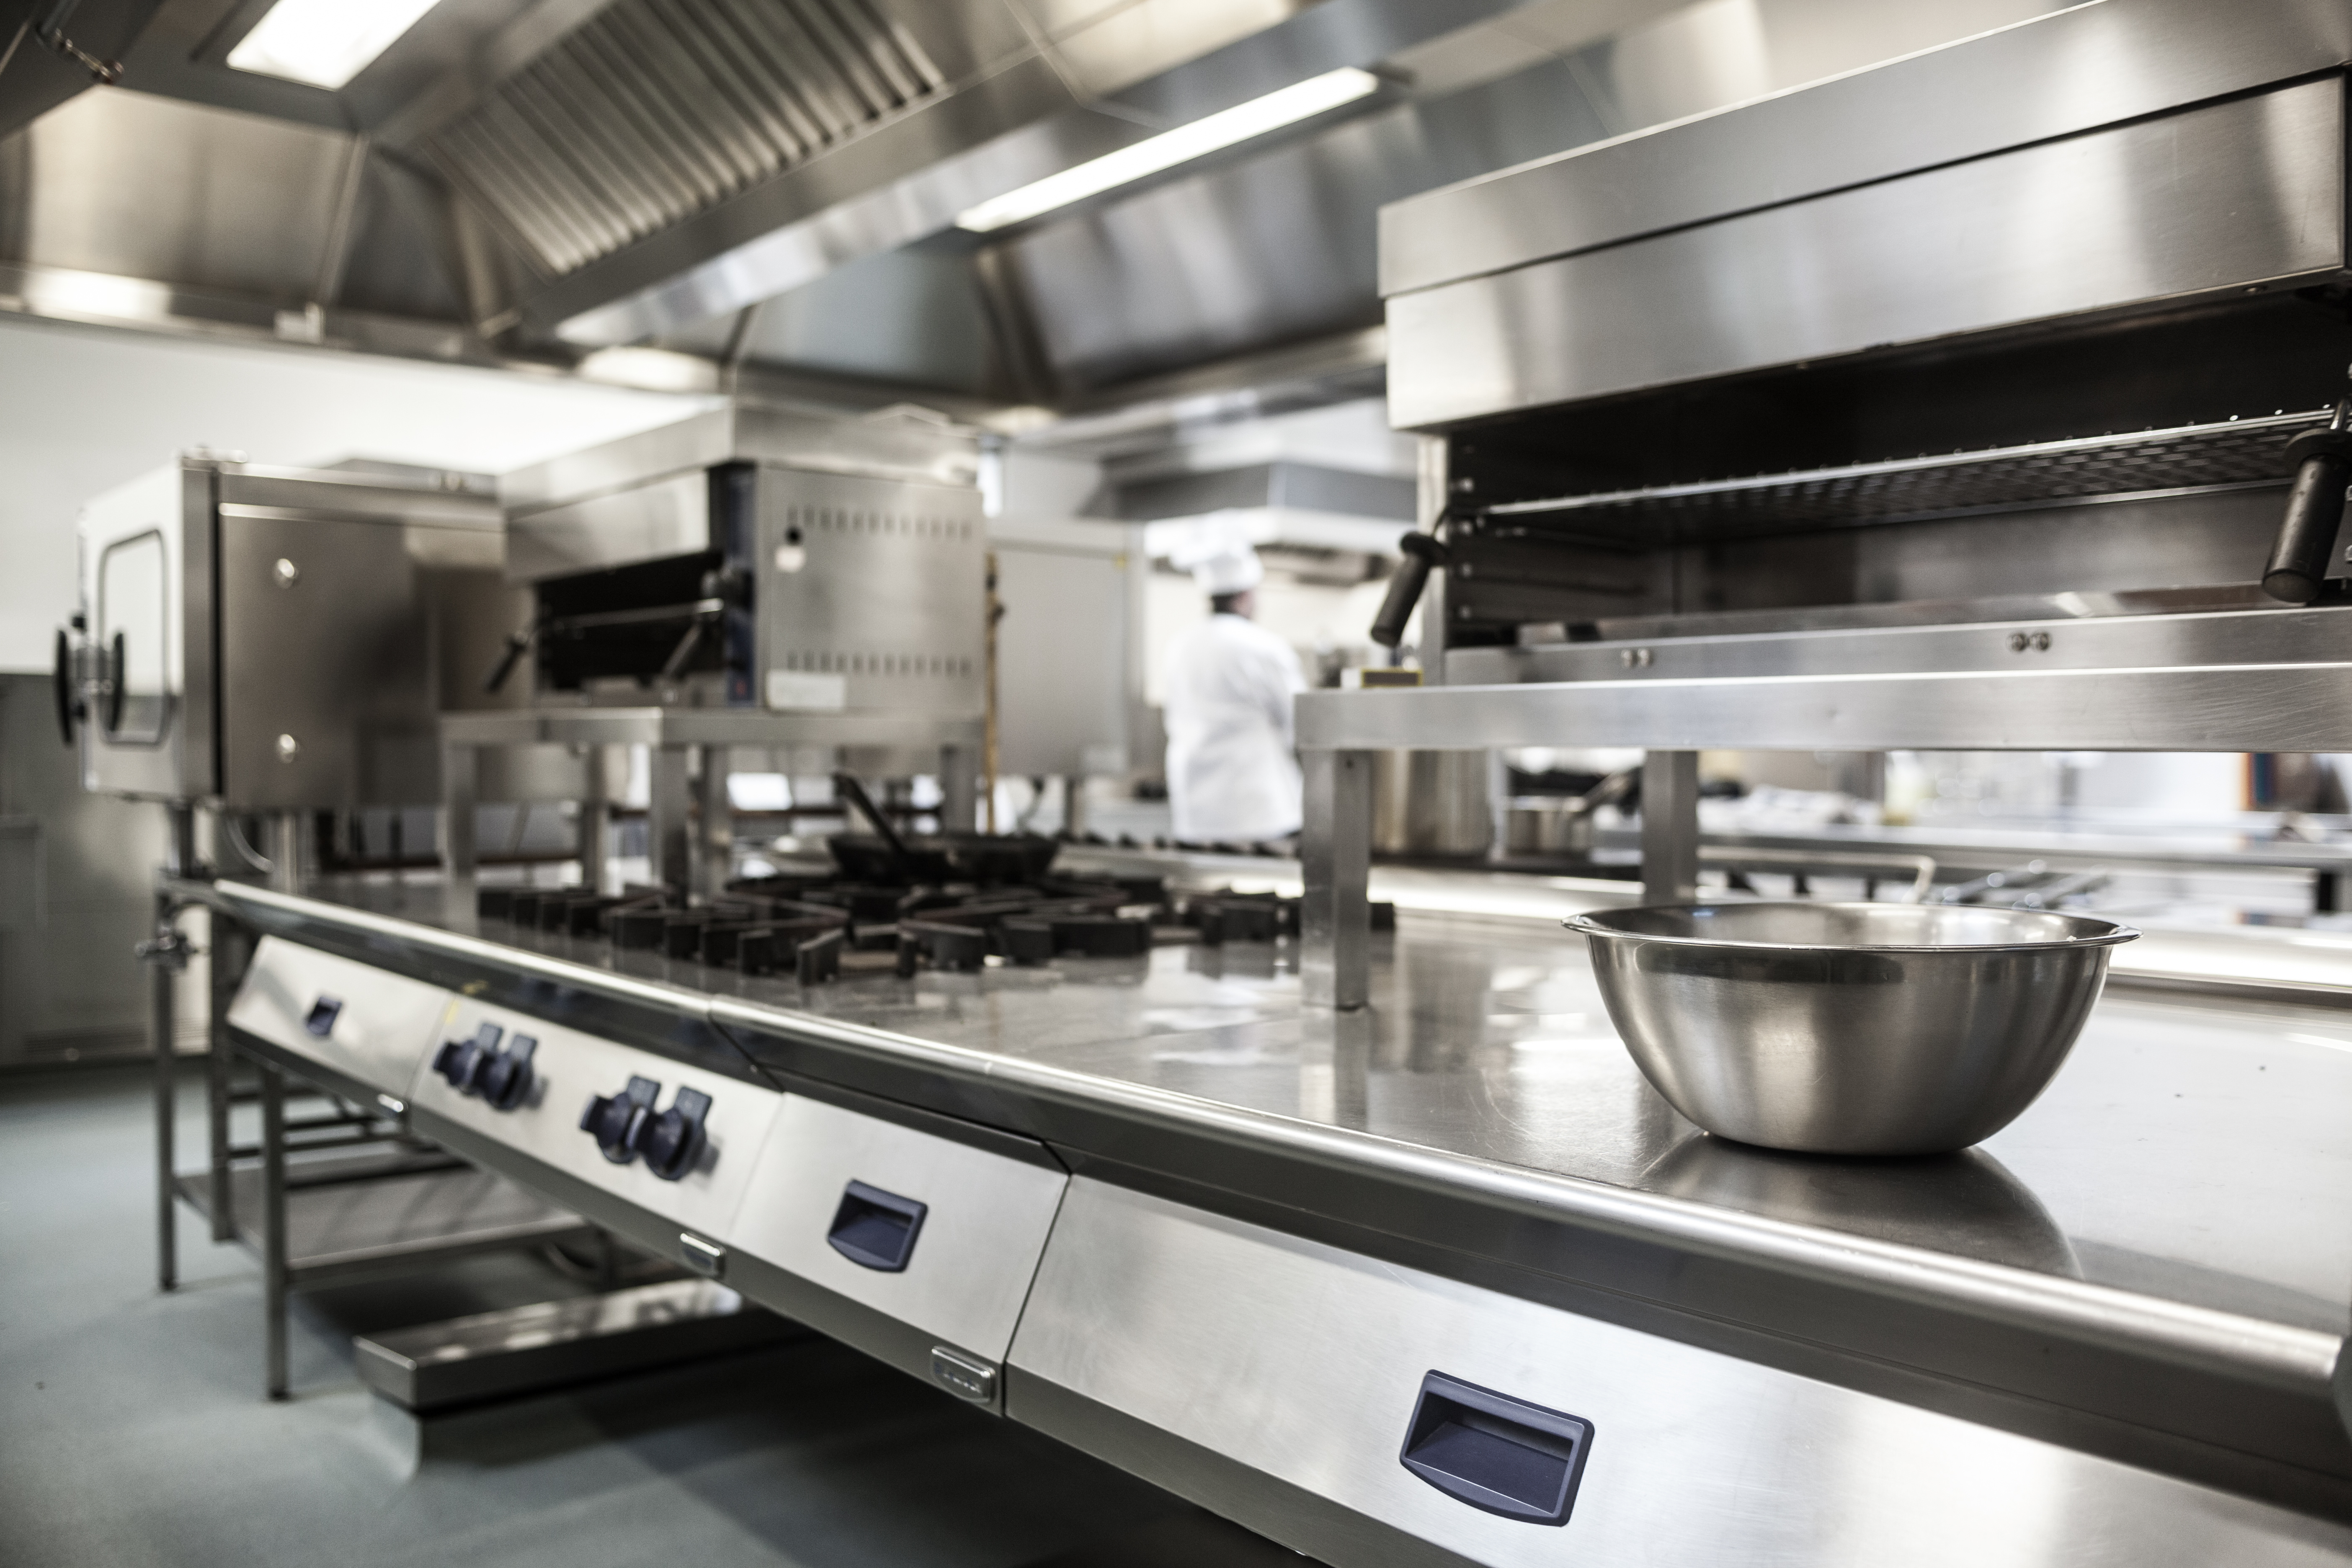 work surface and kitchen equipment in professional kitchen - Professional Kitchen